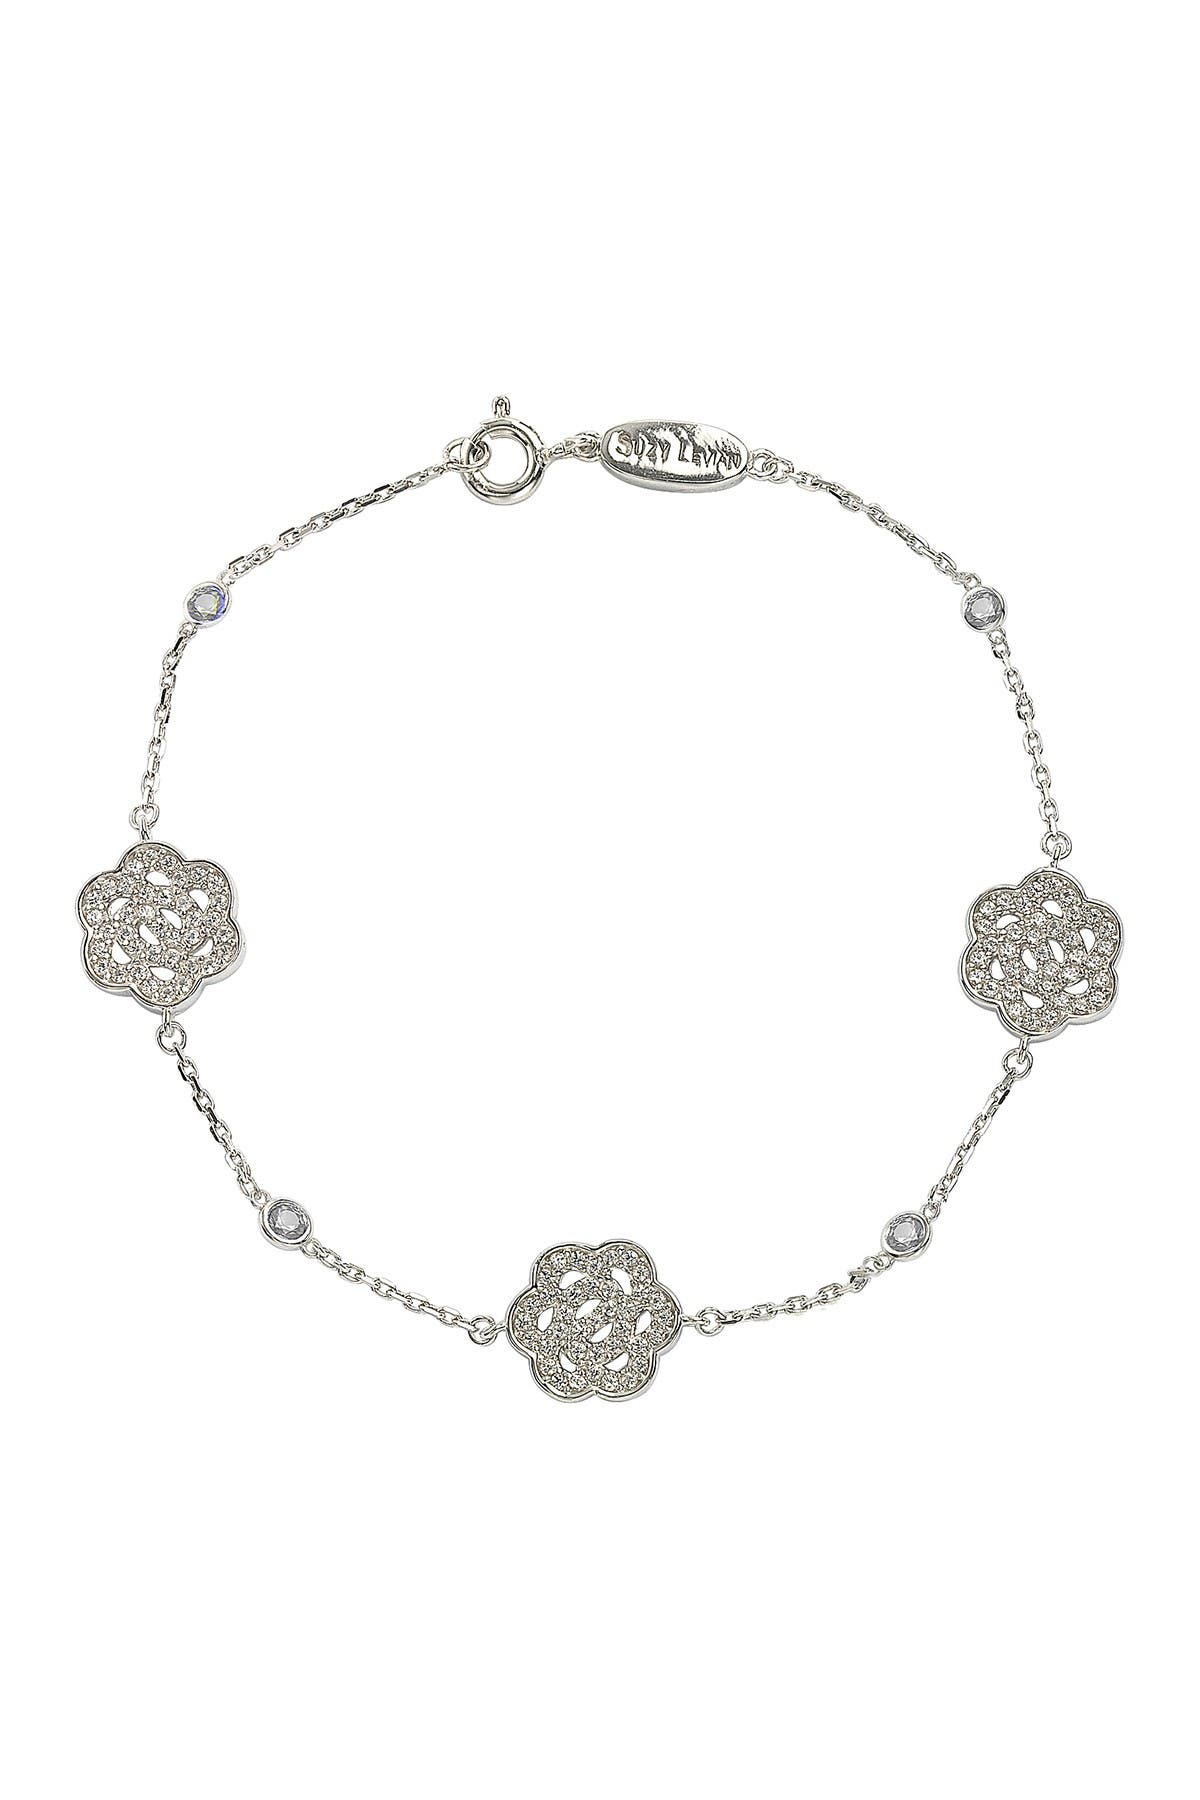 Image of Suzy Levian Sterling Silver Sapphire & Diamond Accent Flowers Station Bracelet